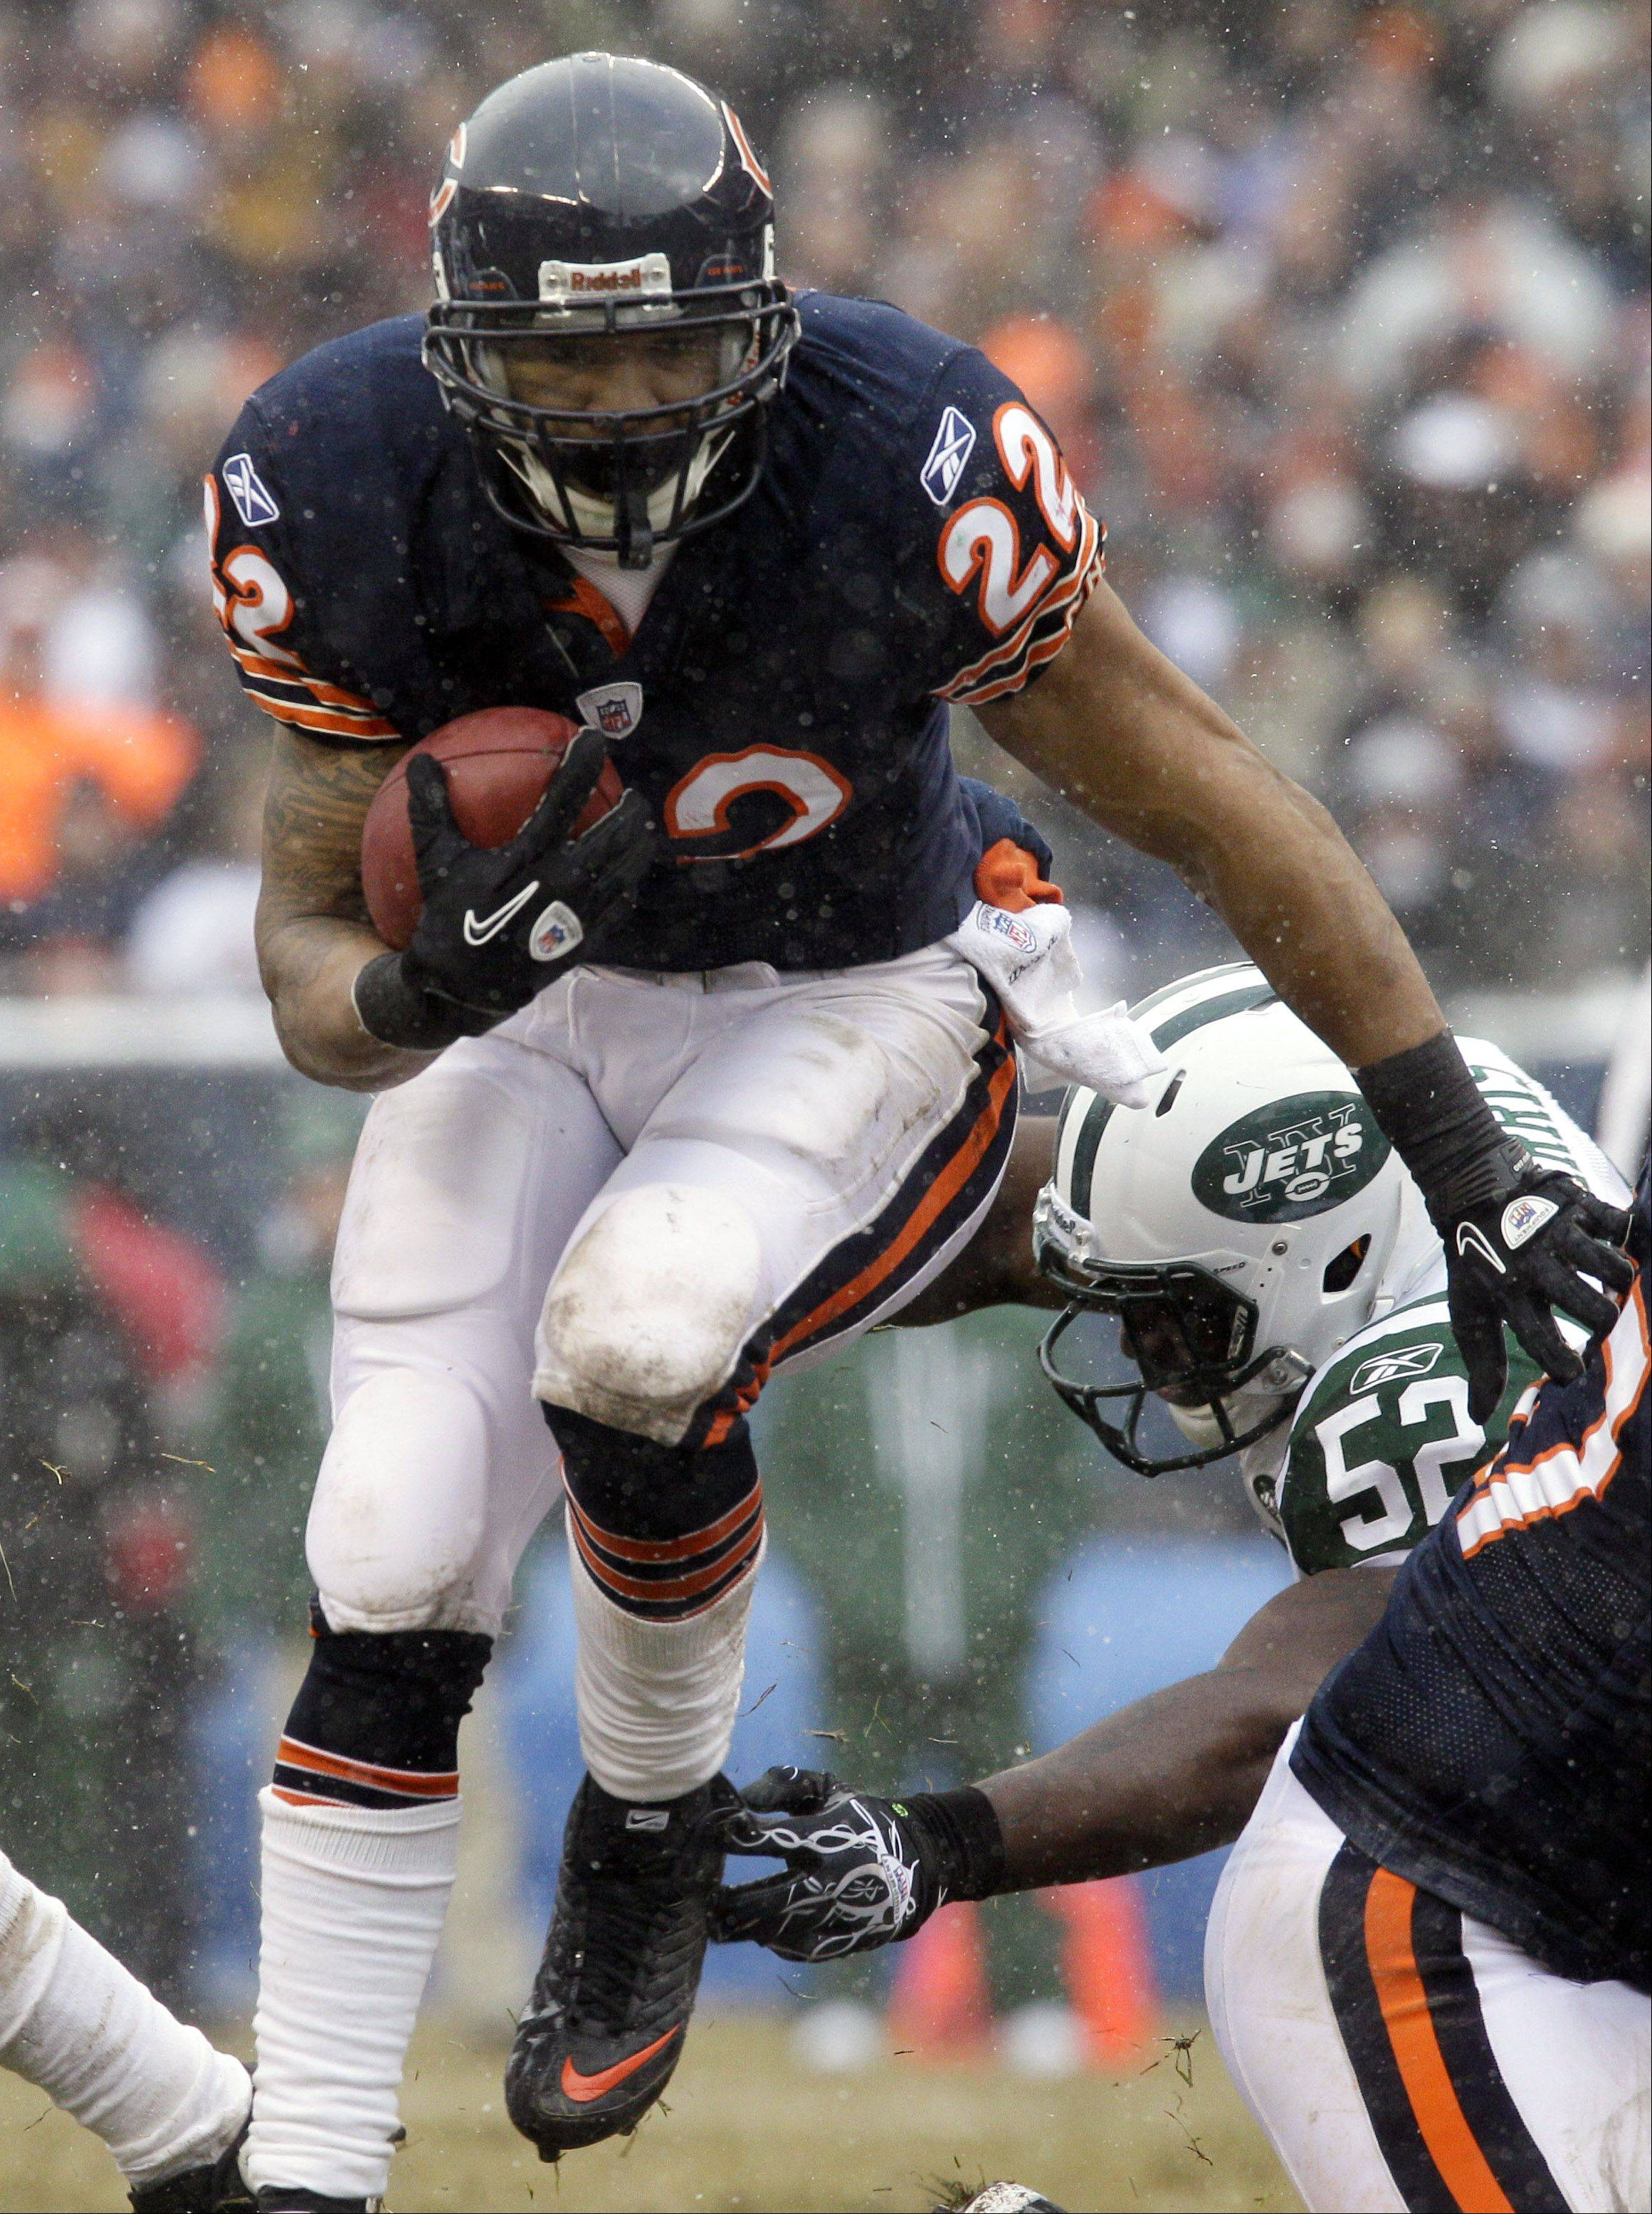 Bears running back Matt Forte is third in the league with 1,776 yards from scrimmage, including 1,229 rushing and 547 receiving. His 70 receptions are a career best, and he needs 10 rushing yards against the Packers on Sunday to eclipse his personal best of 1,238, which was set in his rookie season in 2008.